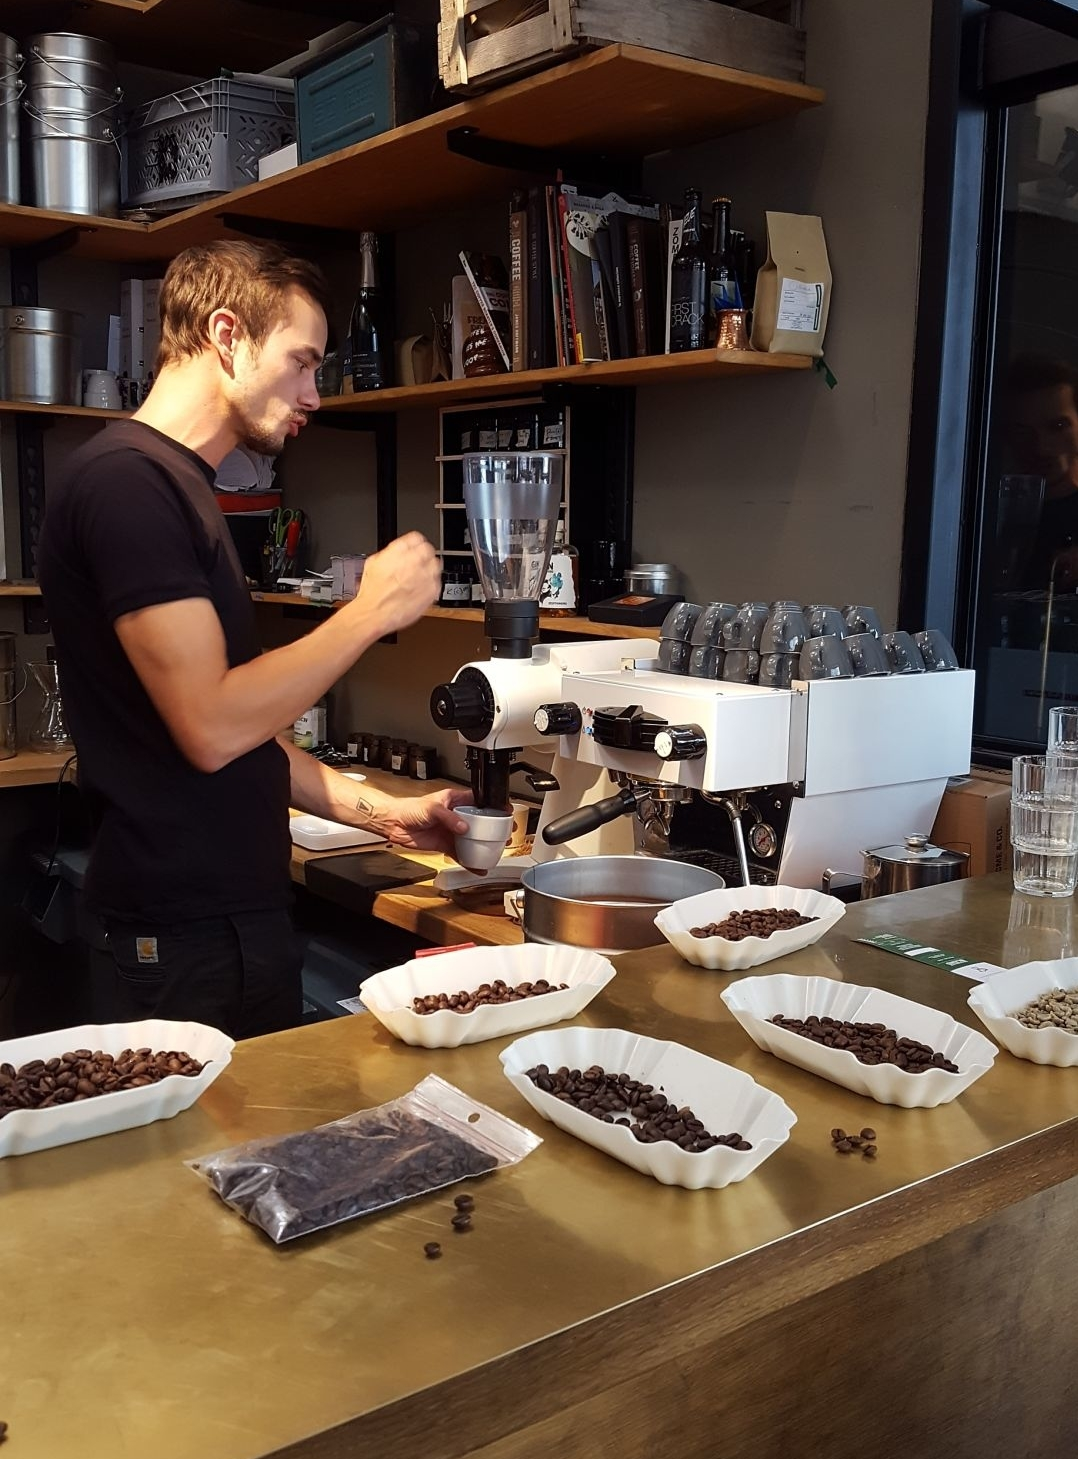 Philipp Reichel preparing coffee. At the coffee mill, weighing in the exact amount of coffee pouder.